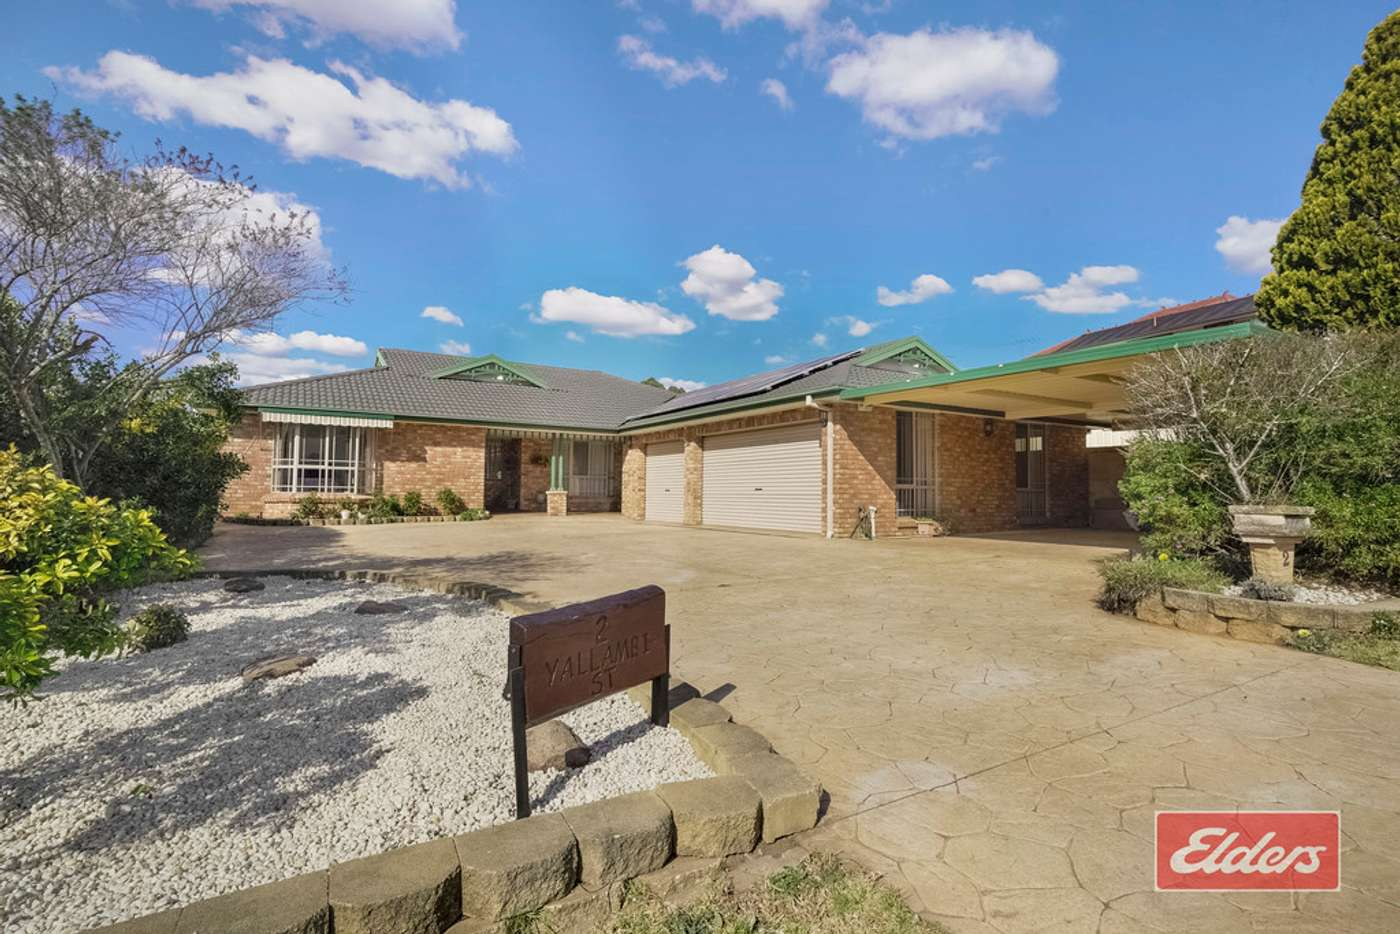 Main view of Homely house listing, 2 YALLAMBI STREET, Picton NSW 2571